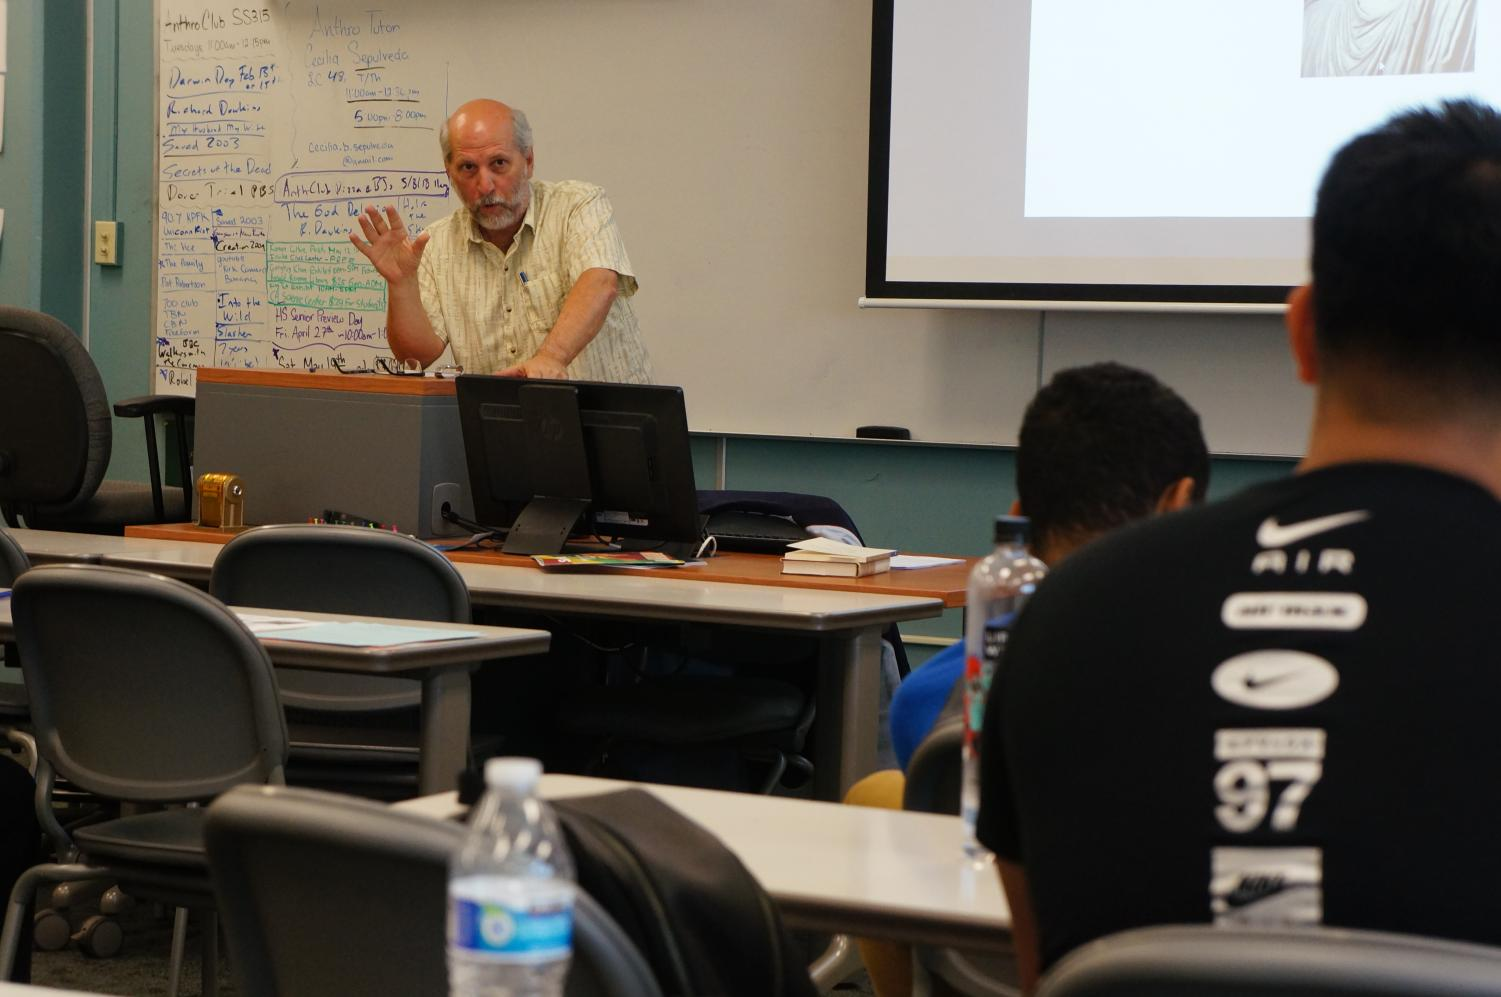 Professor Stolze discusses gender equality in the new testament with students. Photo credit: John Chavez